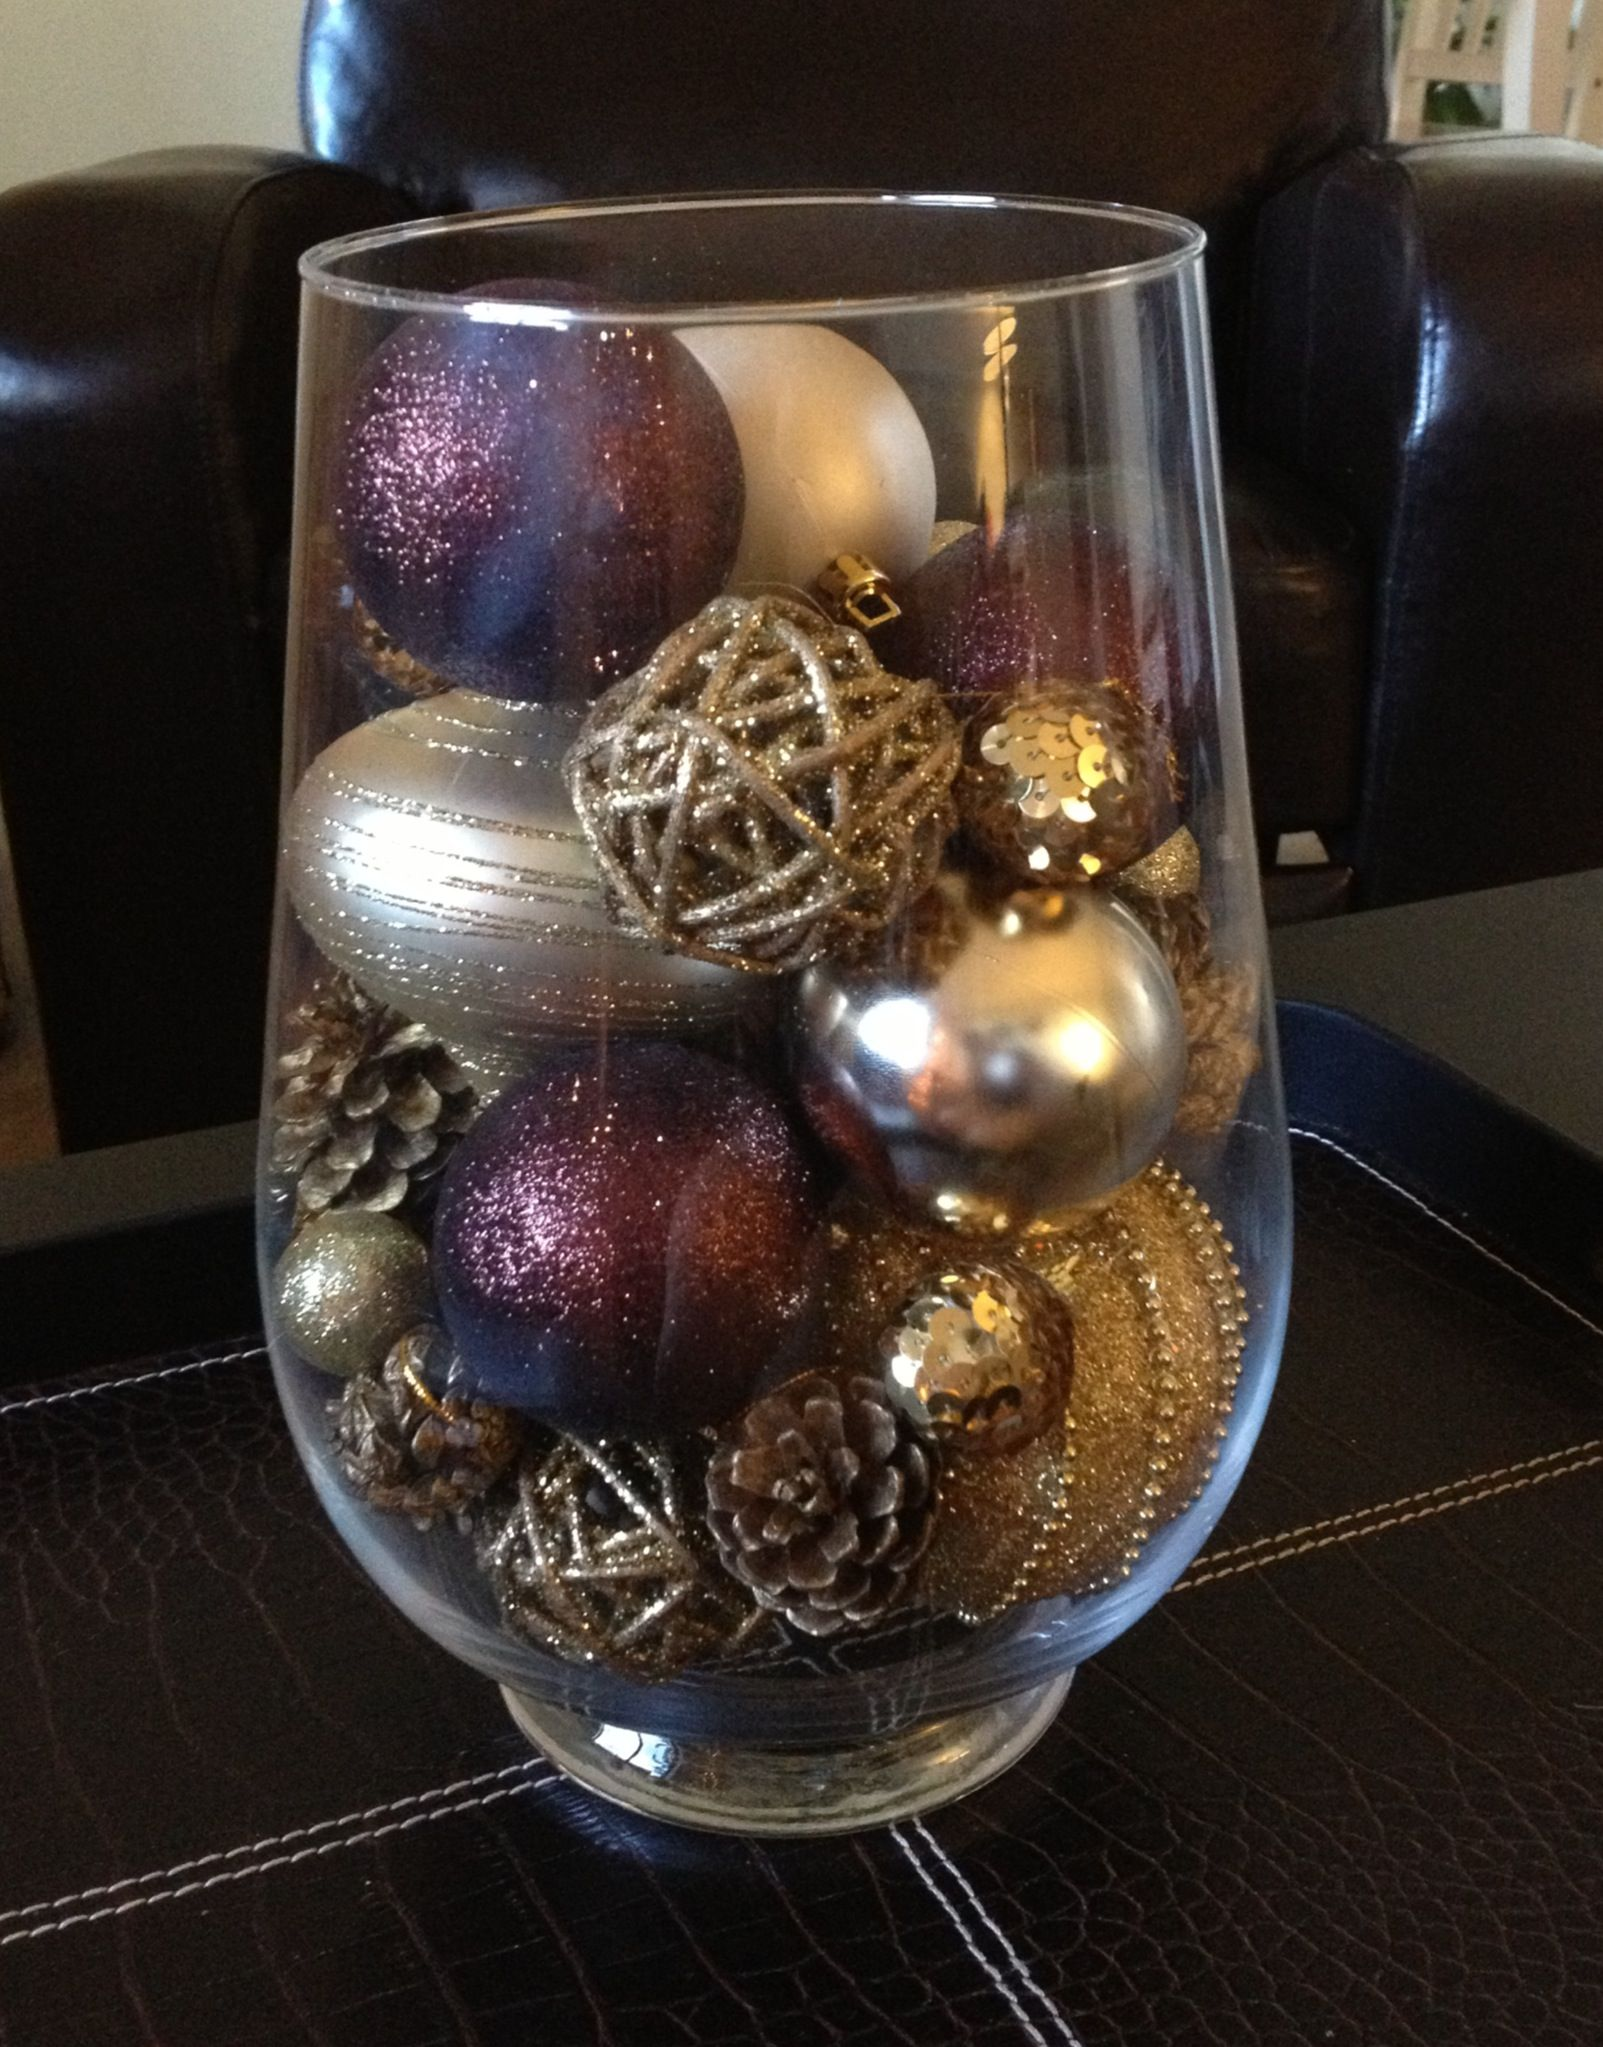 Fill A Hurricane Vase With Ornaments For A Simple Centerpiece Christmas Vases Christmas Centerpieces Holiday Centerpieces